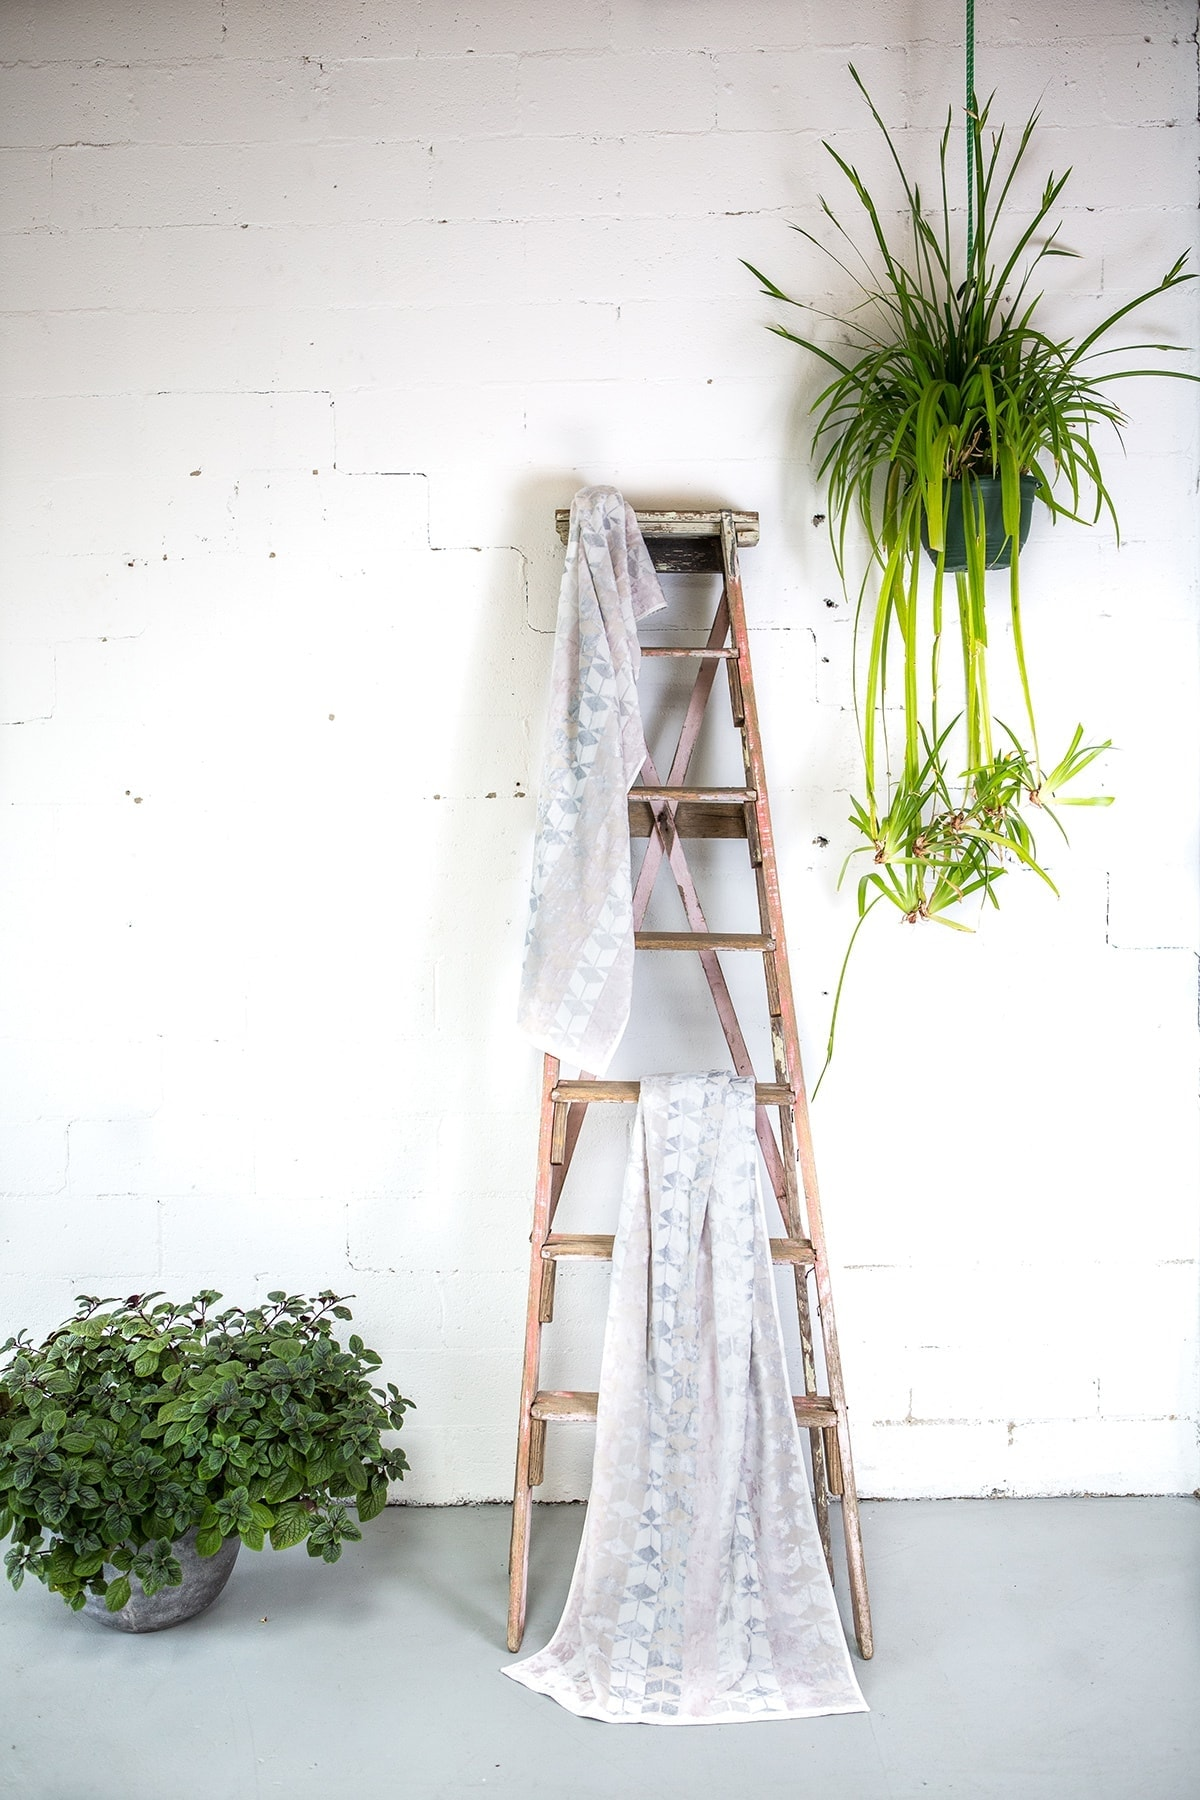 rustic ladder in white bathroom with towels hanging on it and bathroom plants